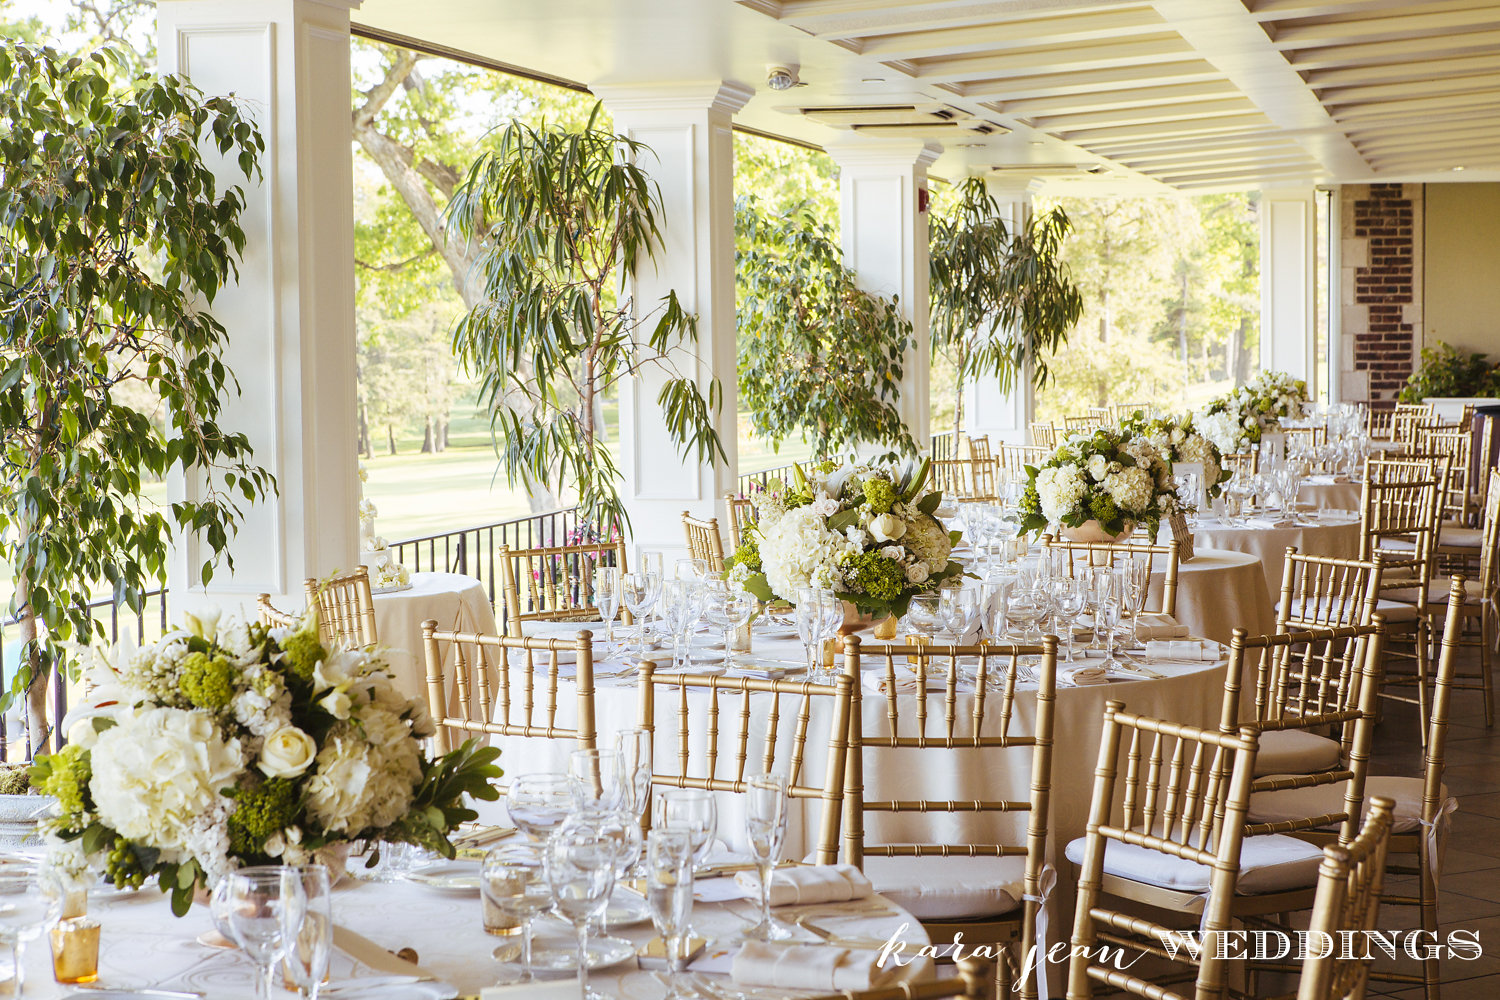 Reception room shot, bringing the outdoors in with large overflowing centerpieces of white and green flowers.